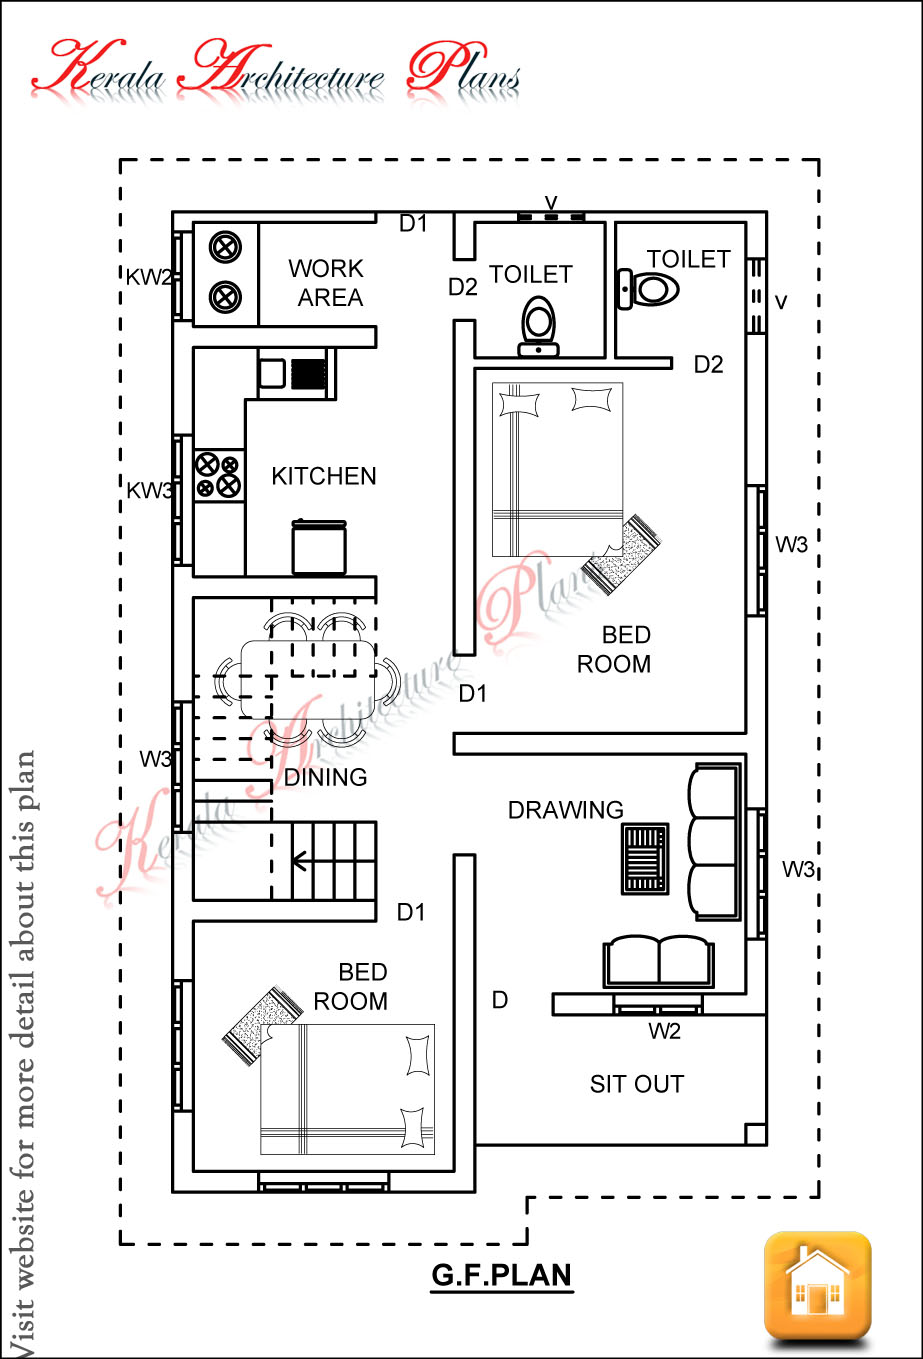 1200 Square Foot House Plans http://www.architecturekerala.com/2012/12/3-bedroom-house-plan-in-1200-square-feet.html